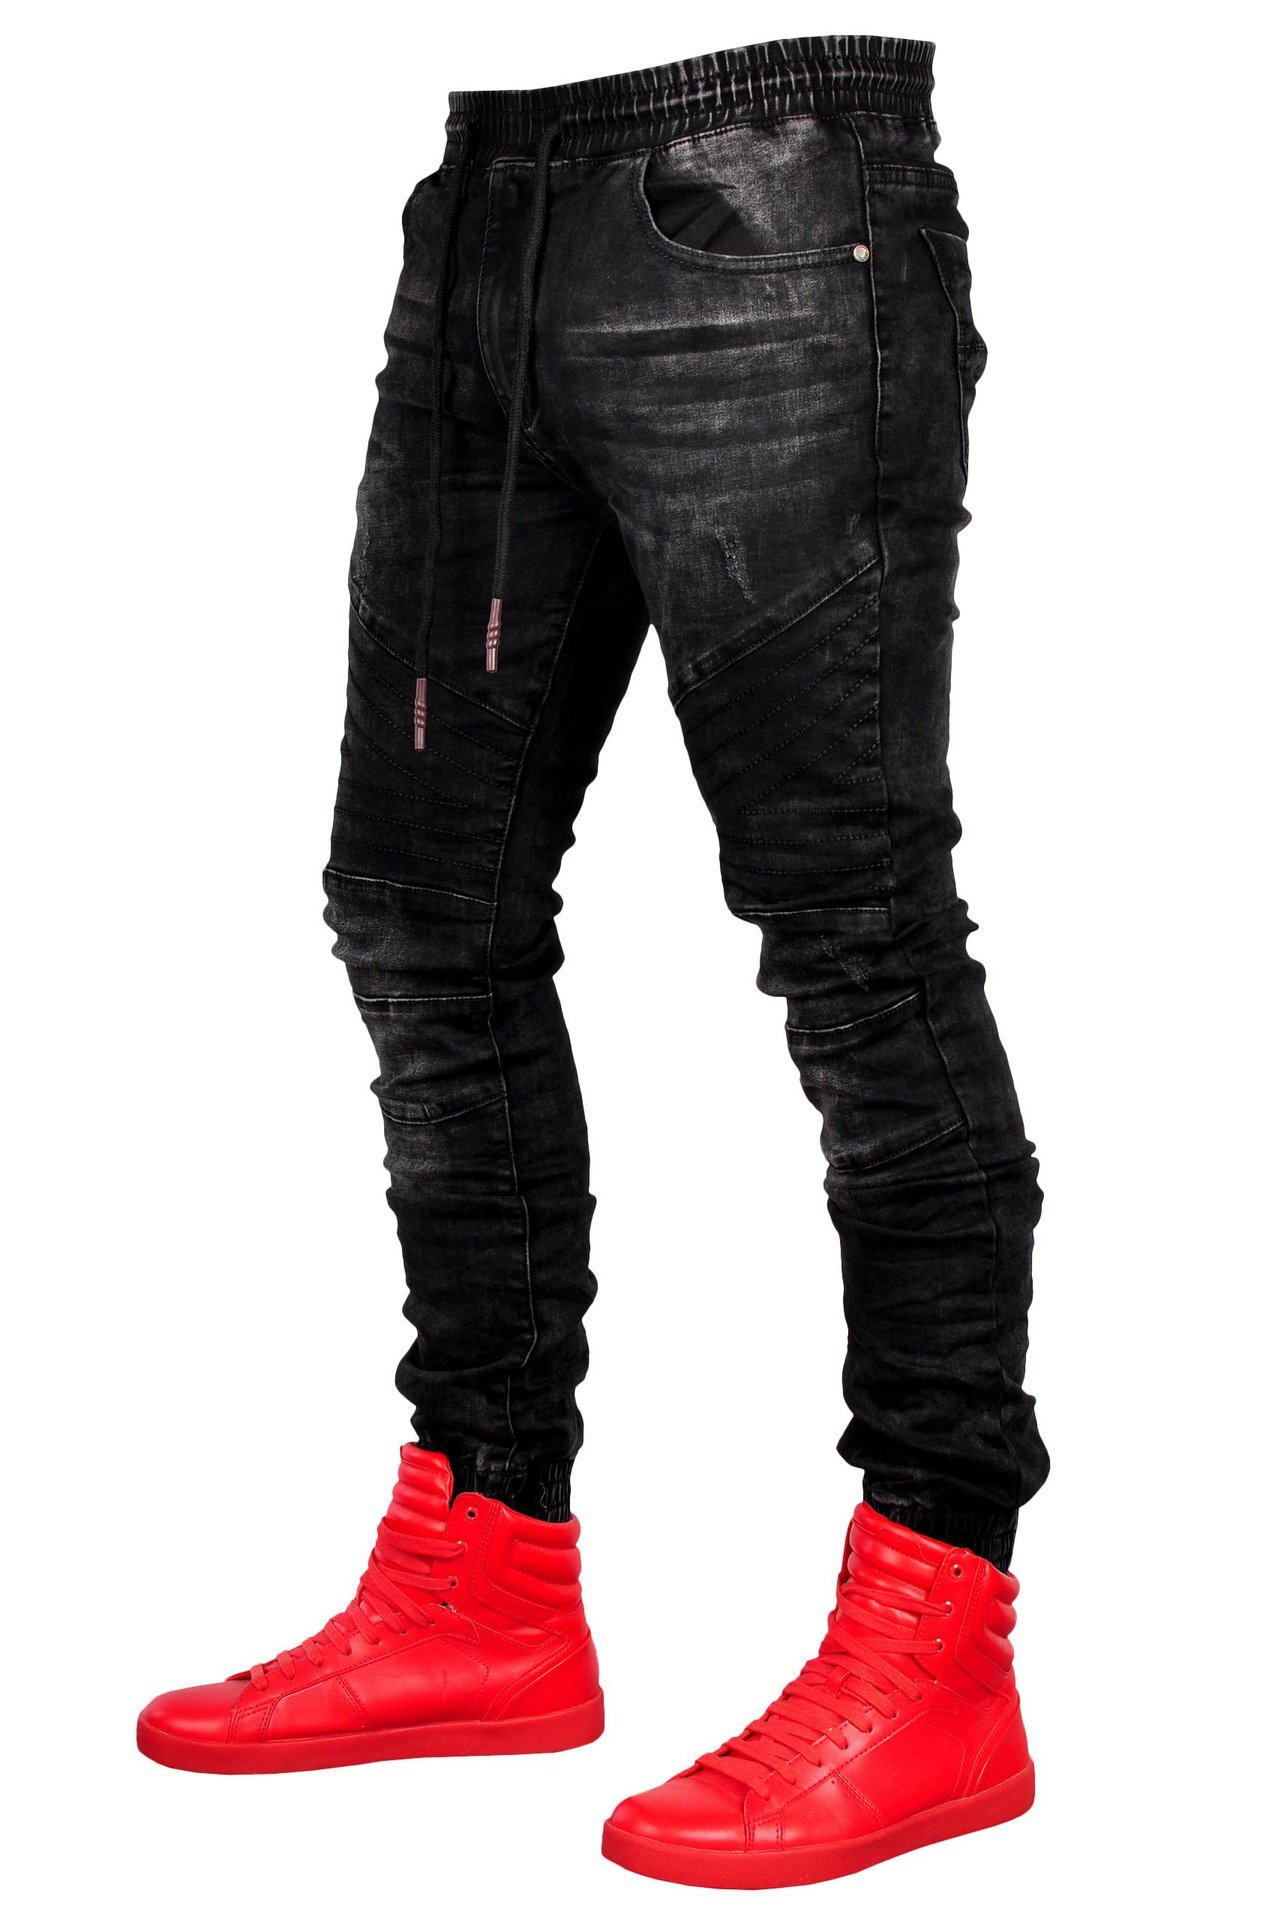 Men's Black Jeans Jogging Tightness Waist Cowboy Trousers Slim Fit Denim Joggers Stretch Male Jean Fashion Casual Trousers